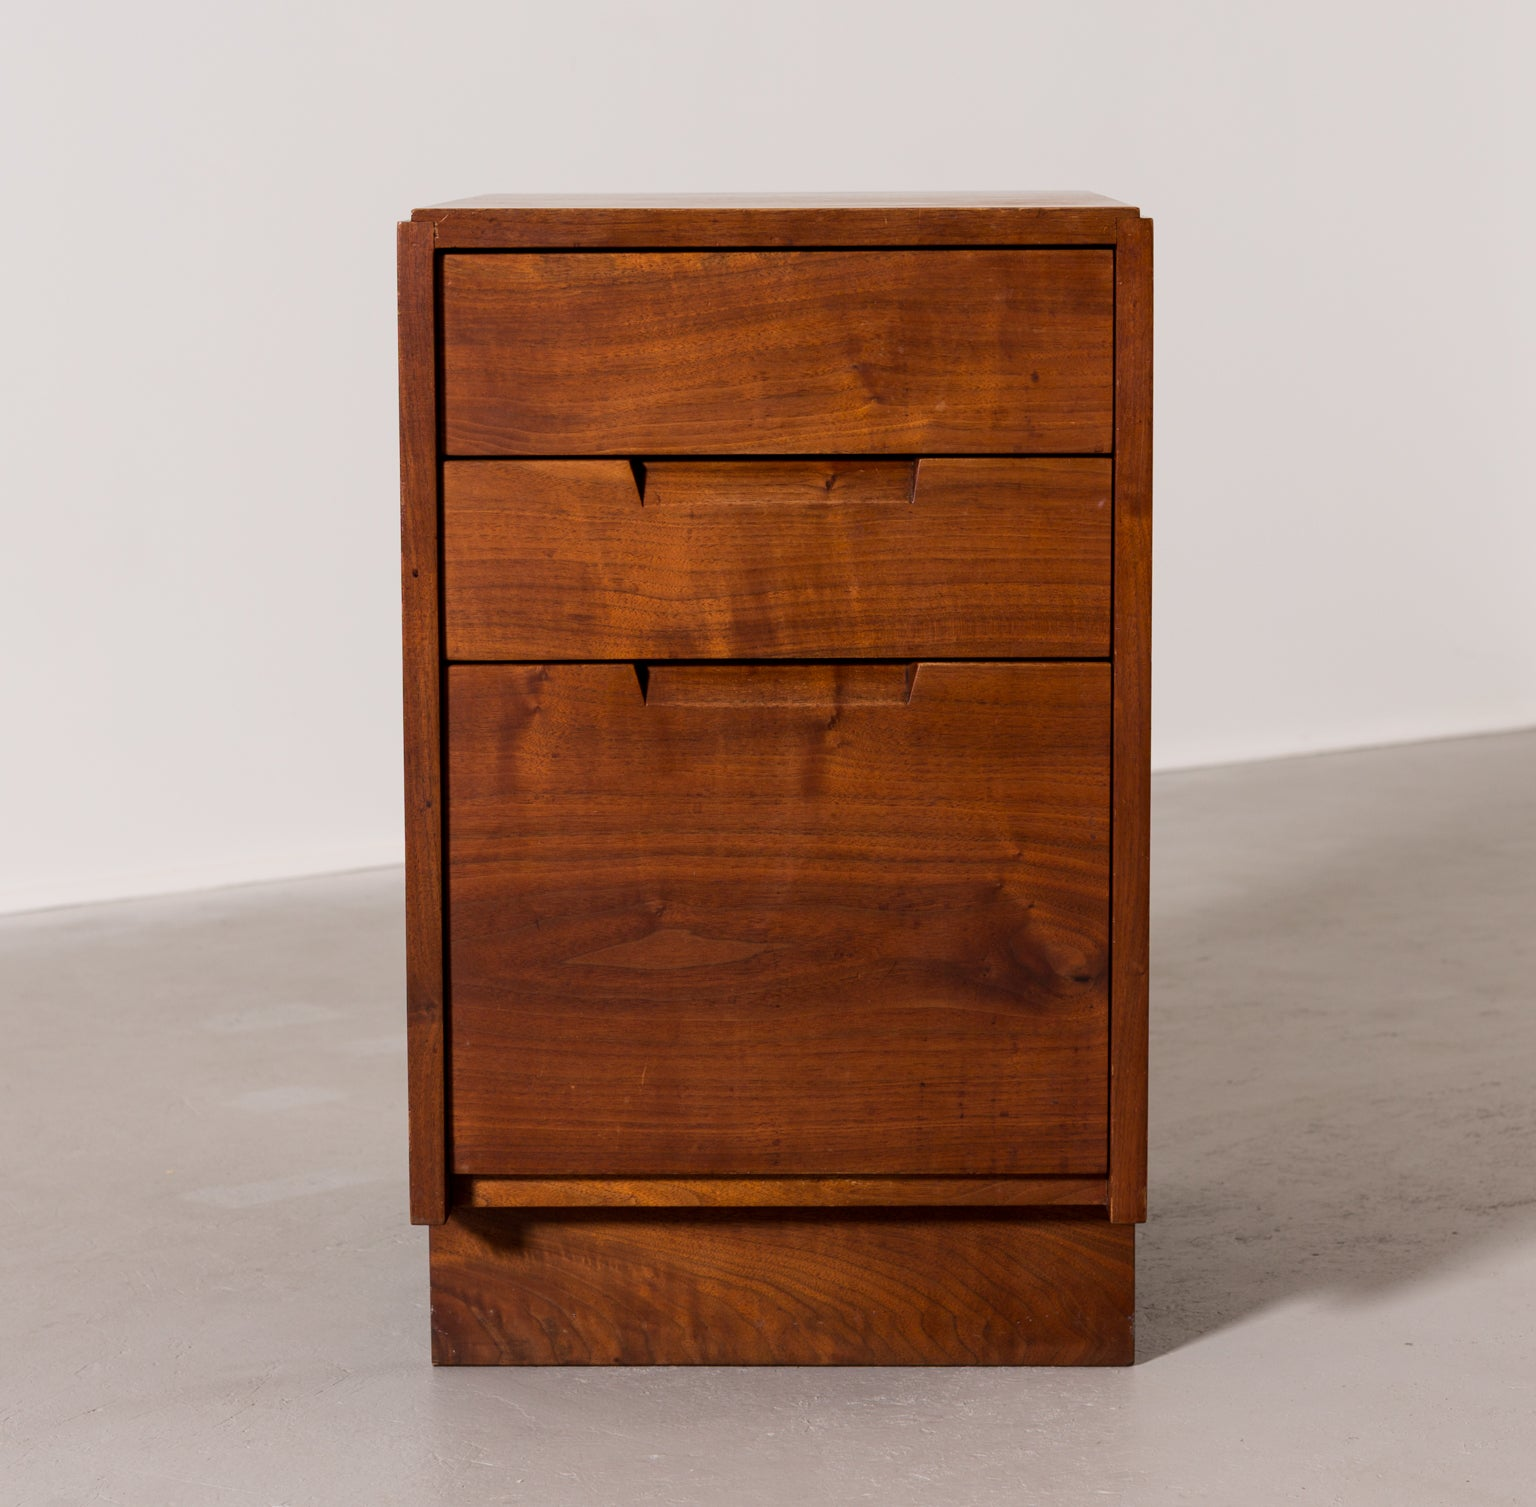 Pair of George Nakashima Nightstands, 1965 - The Exchange Int